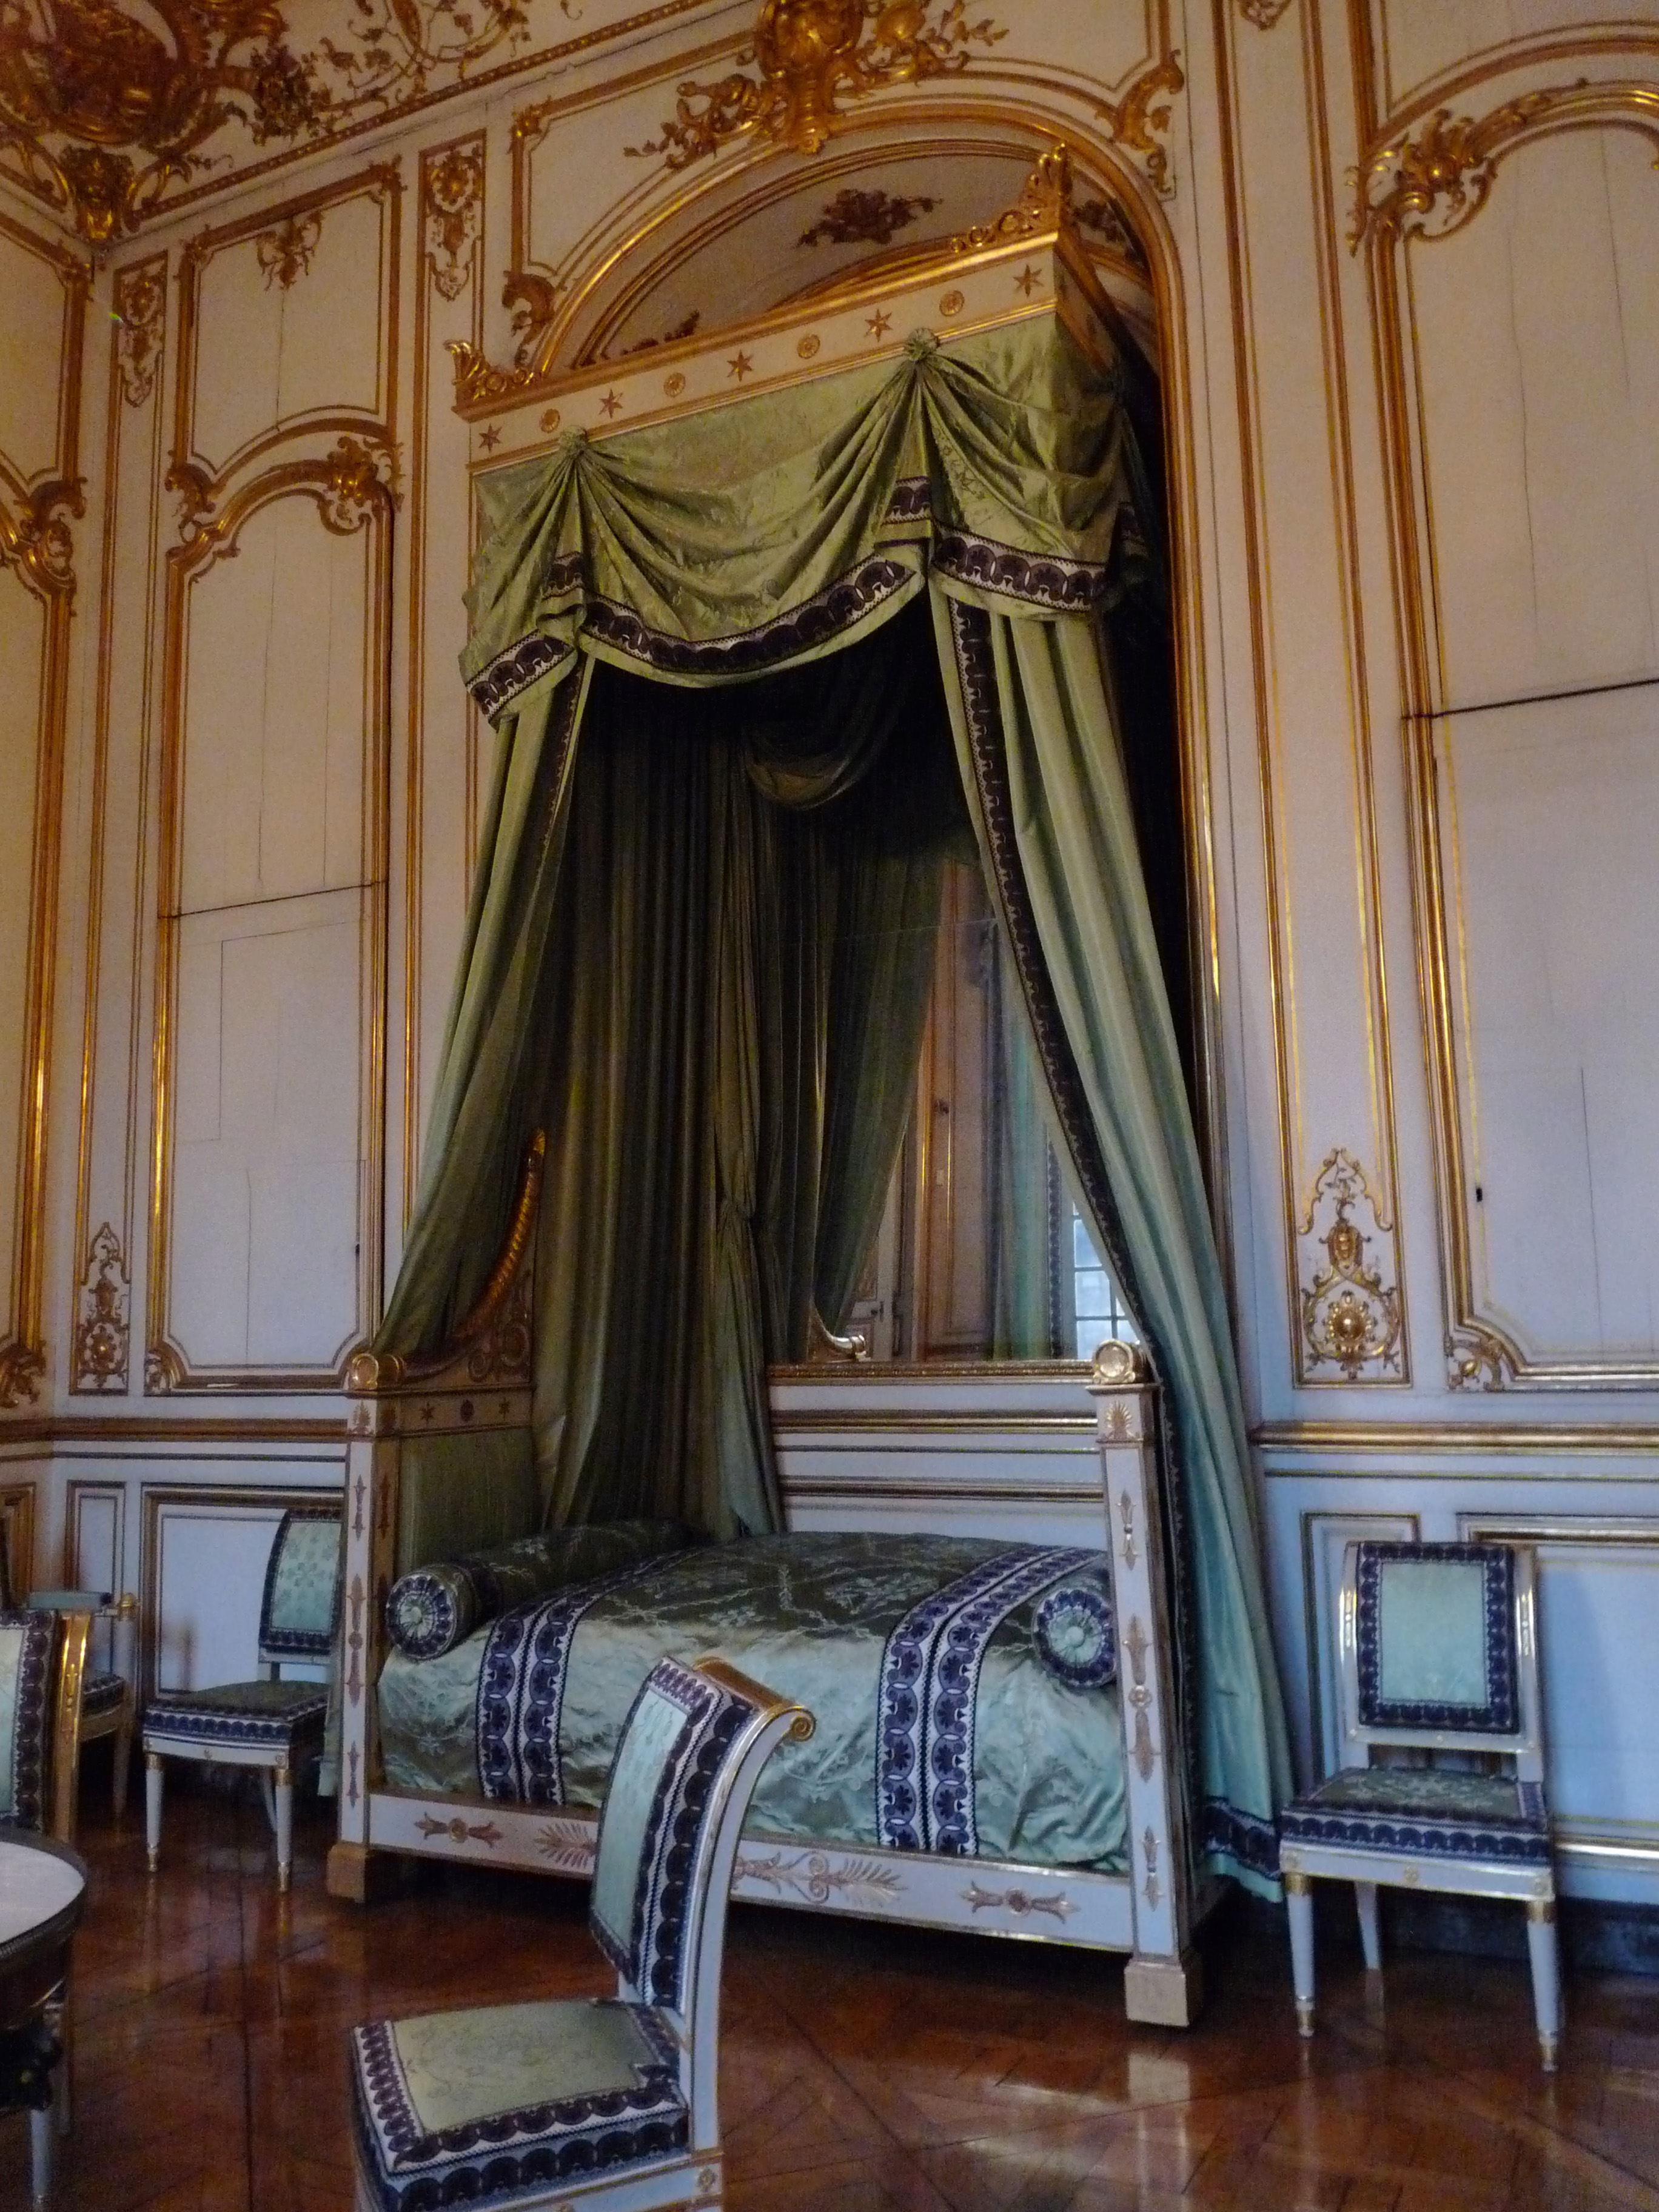 File chambre coucher de napol on ier palais rohan strasbourg 2 jpg wikimedia commons - Chambre des commerces strasbourg ...